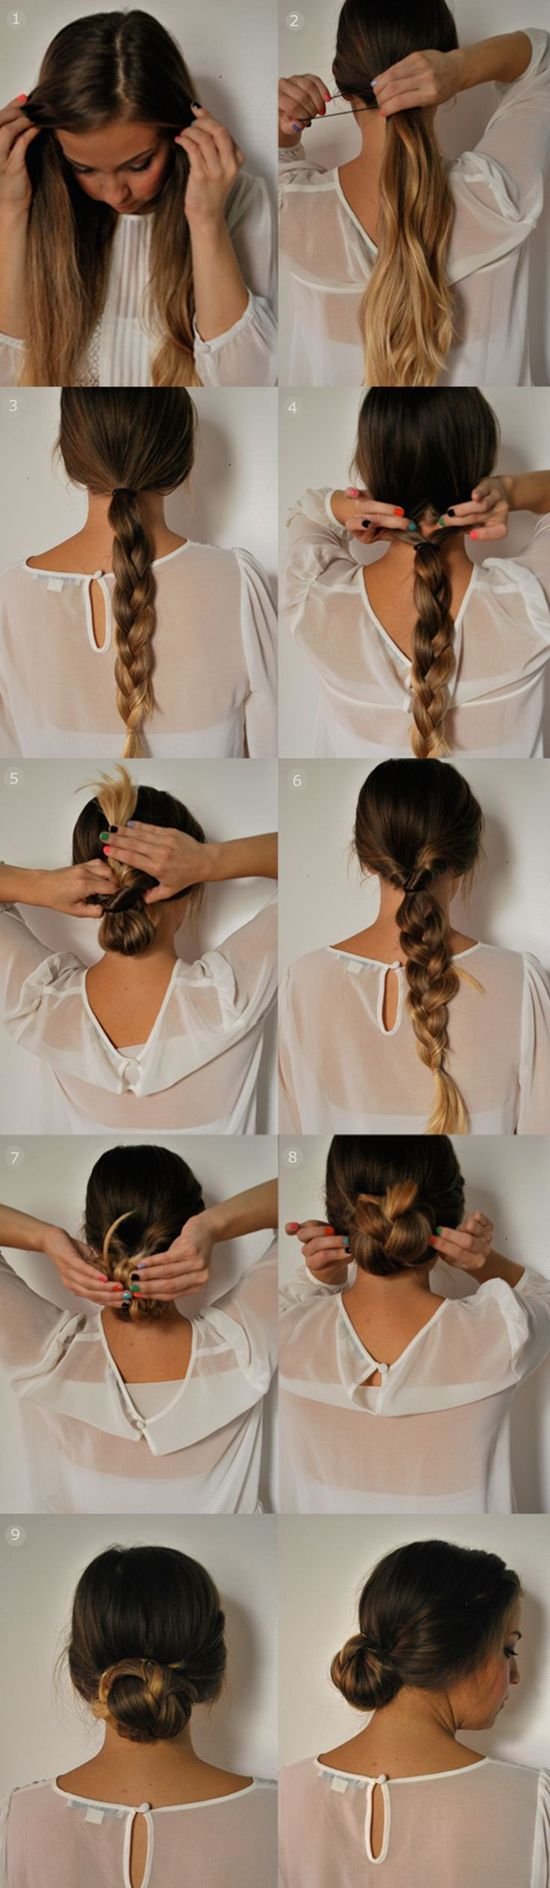 Looking for quick and easy but beautiful daily hairstyles? We have collected the latest most popular super easy, five minutes hairstyles for you. These step by step hair tutorials to five-minute or less hairstyles can help you make more of your busy mornings. All of these hairstyles can be completed in 5-10 minutes. Check out …